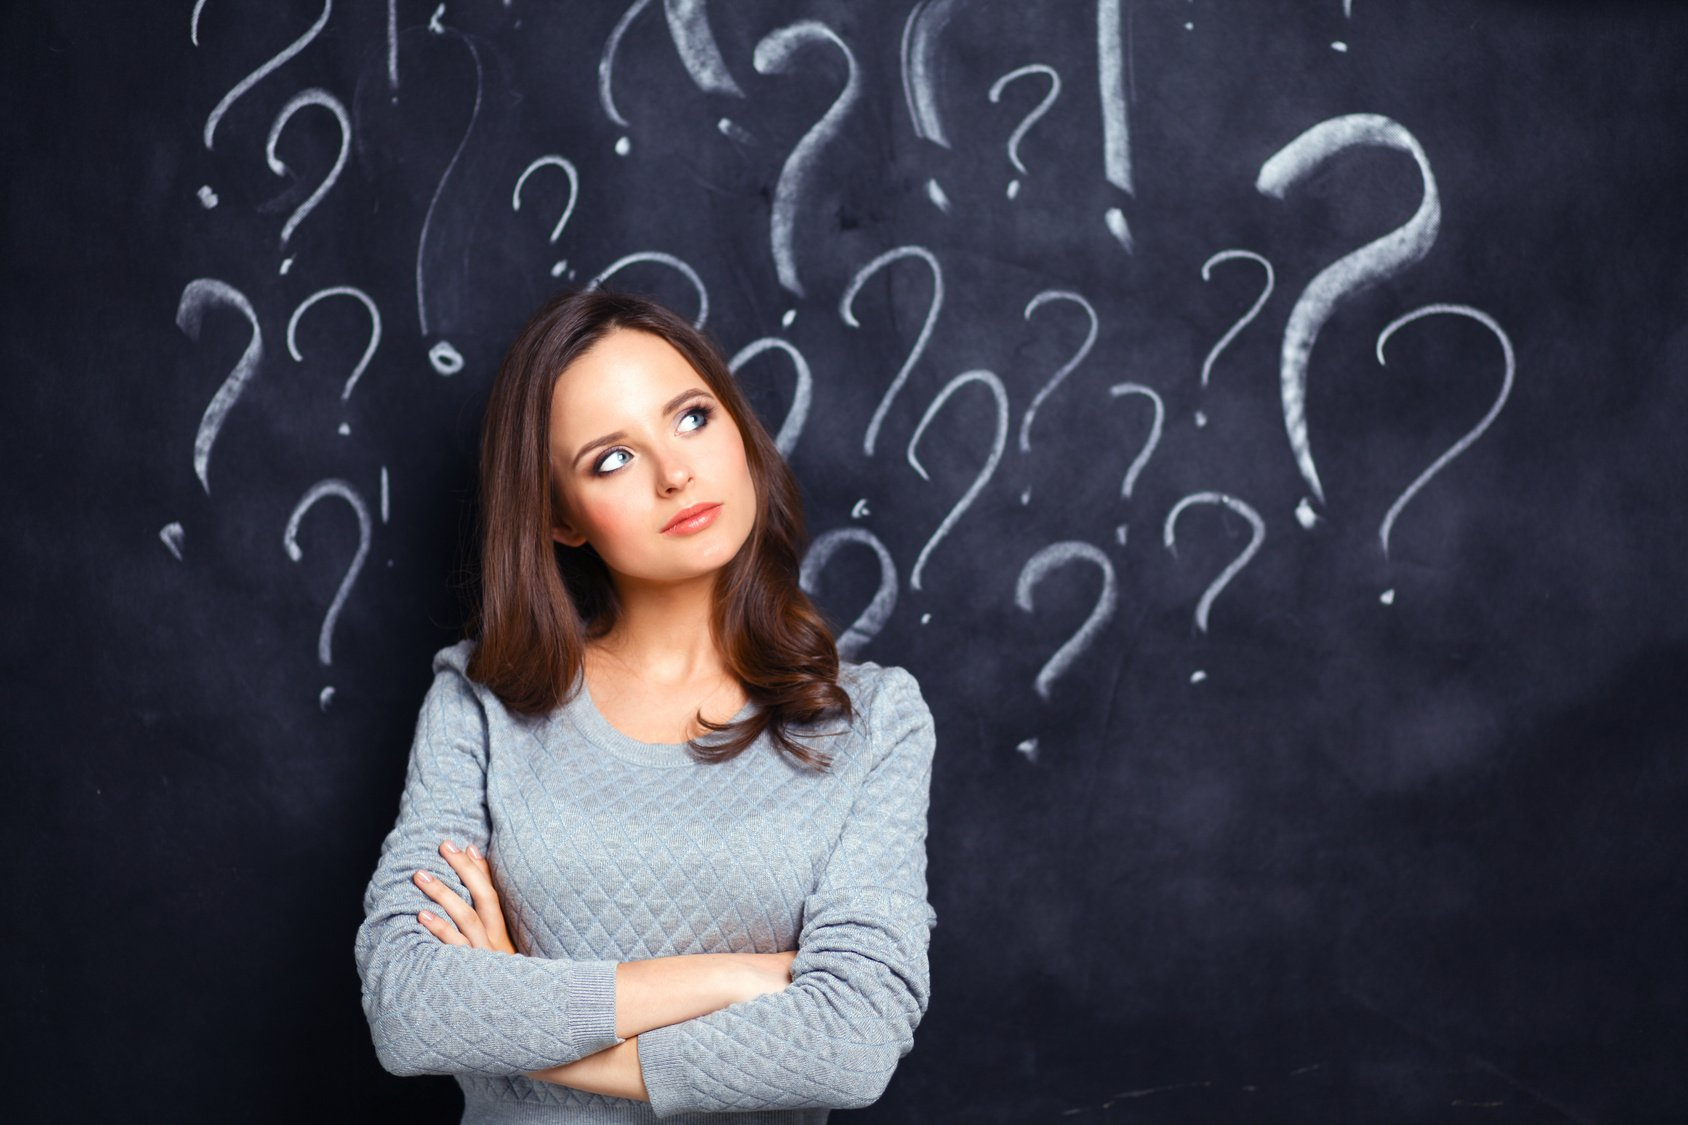 6 Questions To Ask Yourself Before Starting A Business 103611 1 on Risk Management Insurance